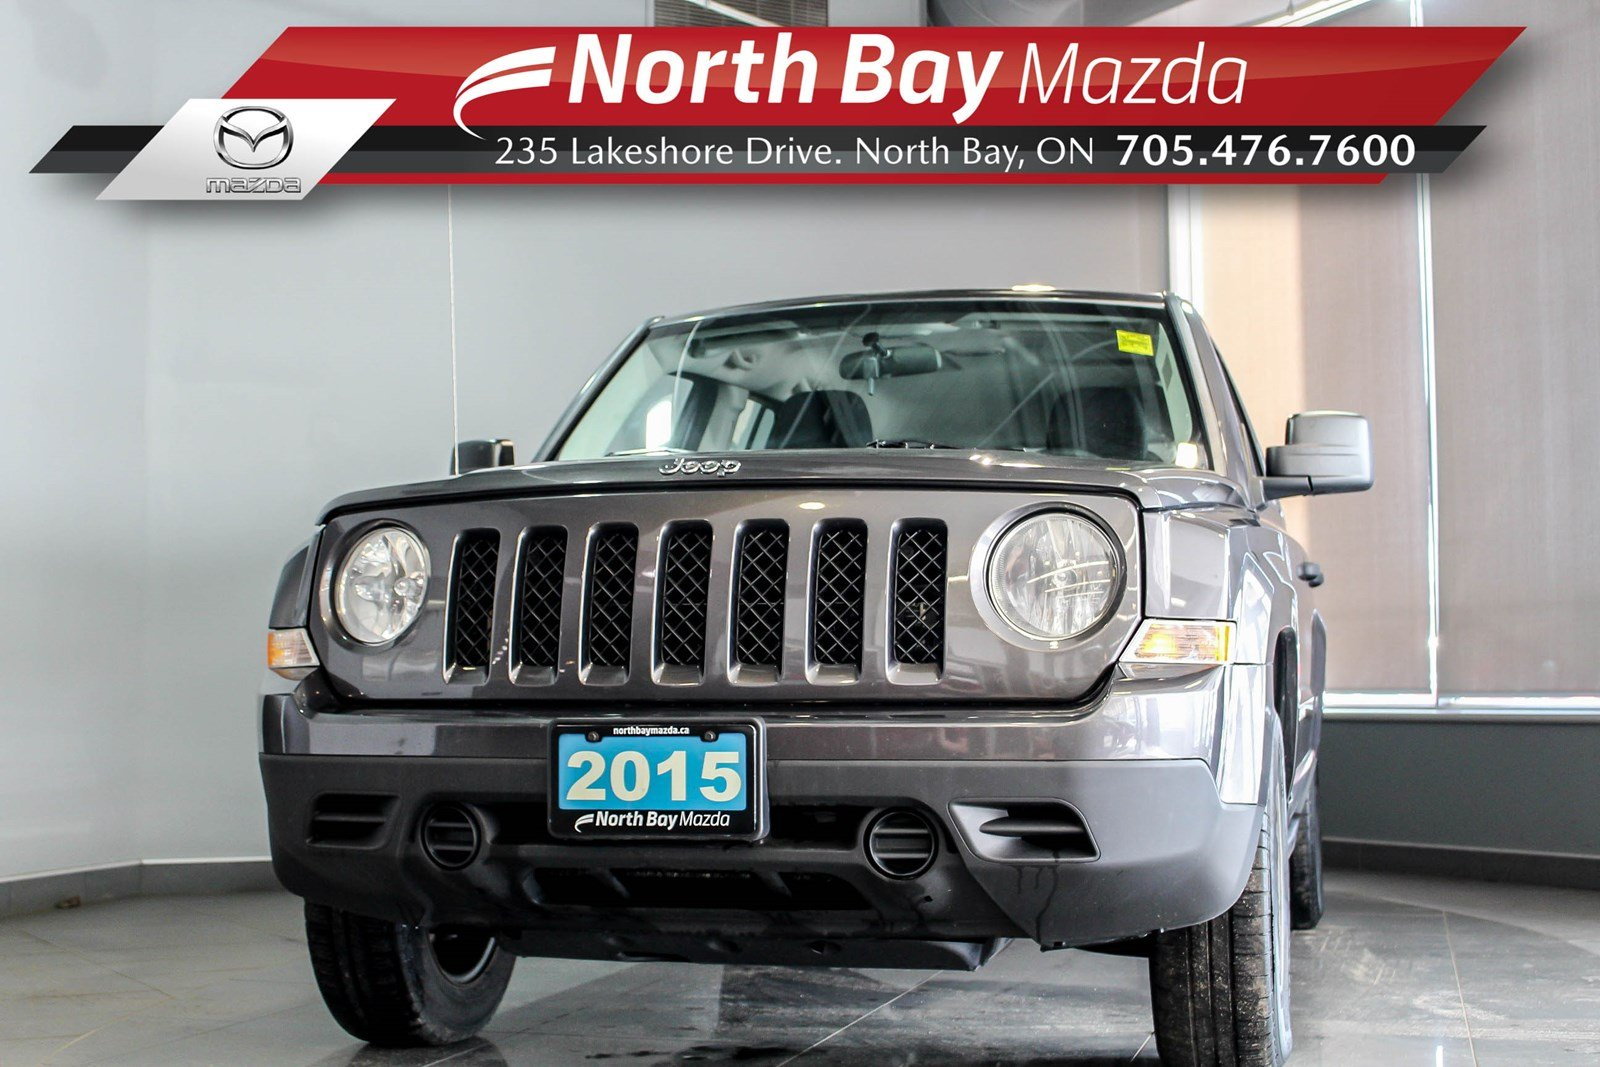 Pre-Owned 2015 Jeep Patriot Sport FWD with Cruise Control, Cloth Interior, A/C